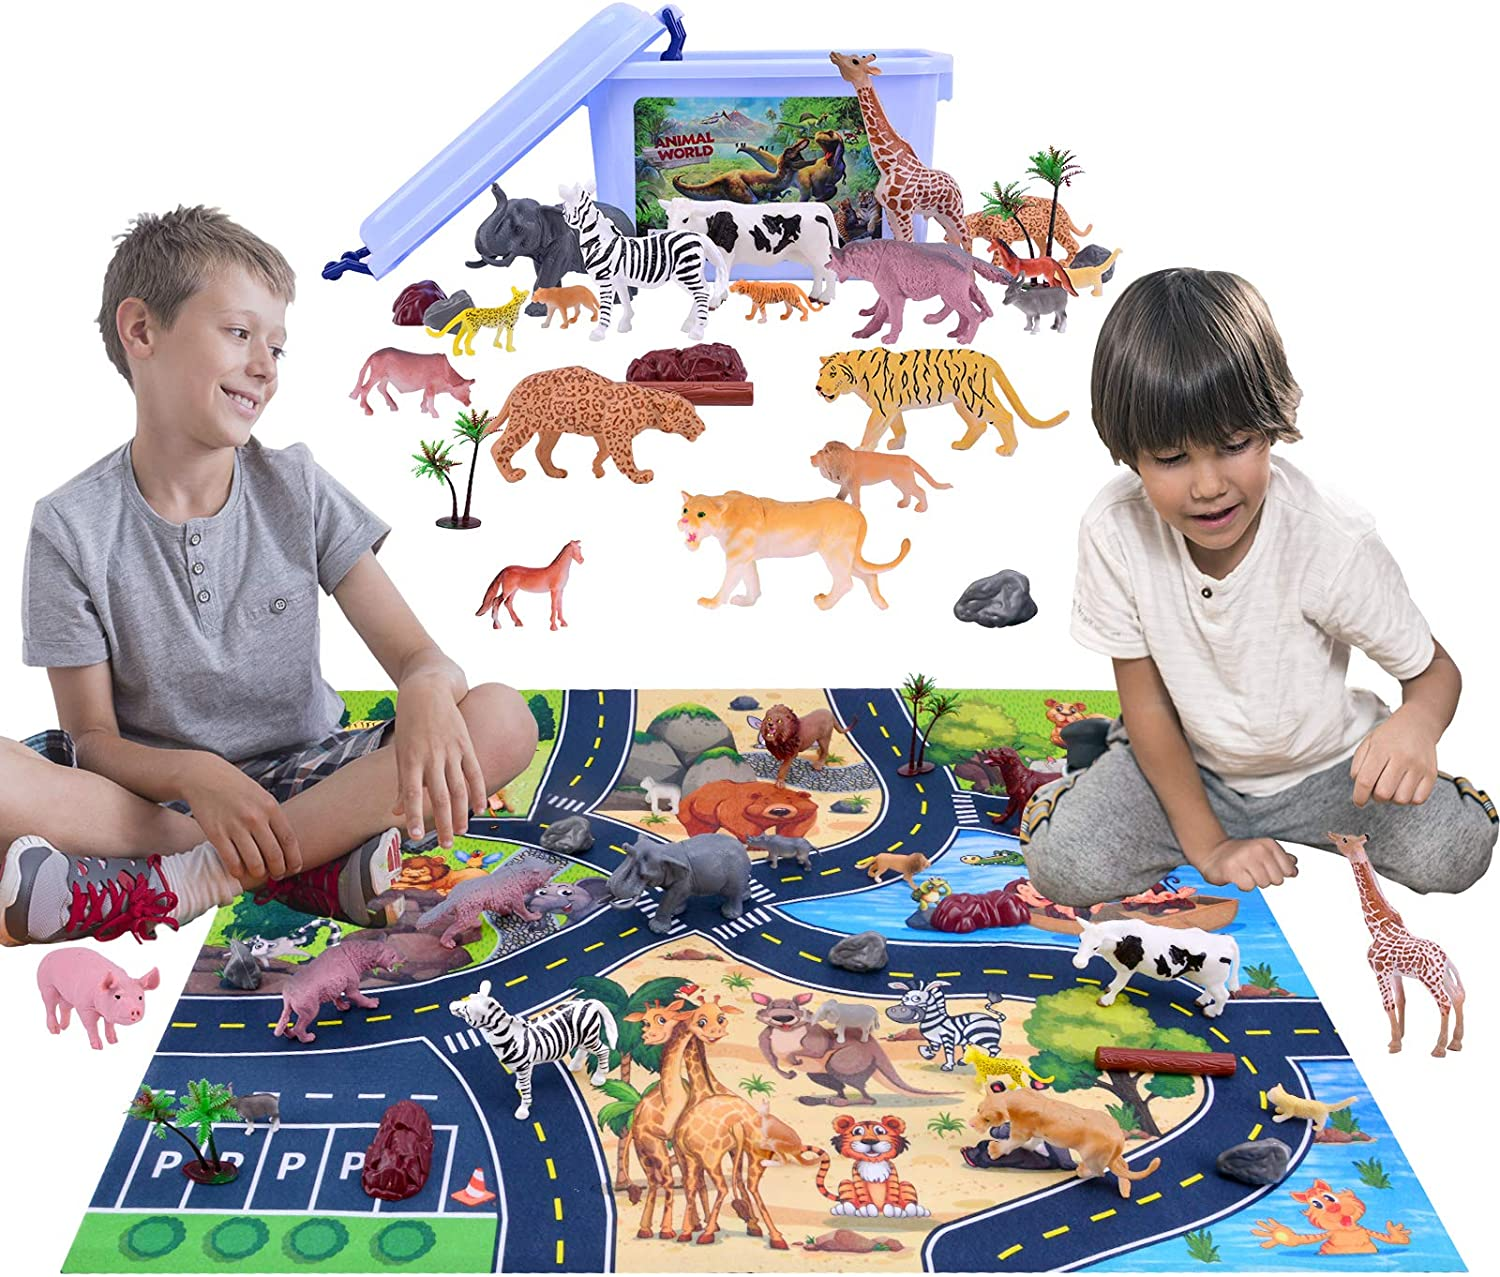 Lekebaby Animal Playset with 36 Realistic Animal Figures to Create an Animal World Great Educational Animal Toys for 3,4,5,6 Years Old Boys /& Girls